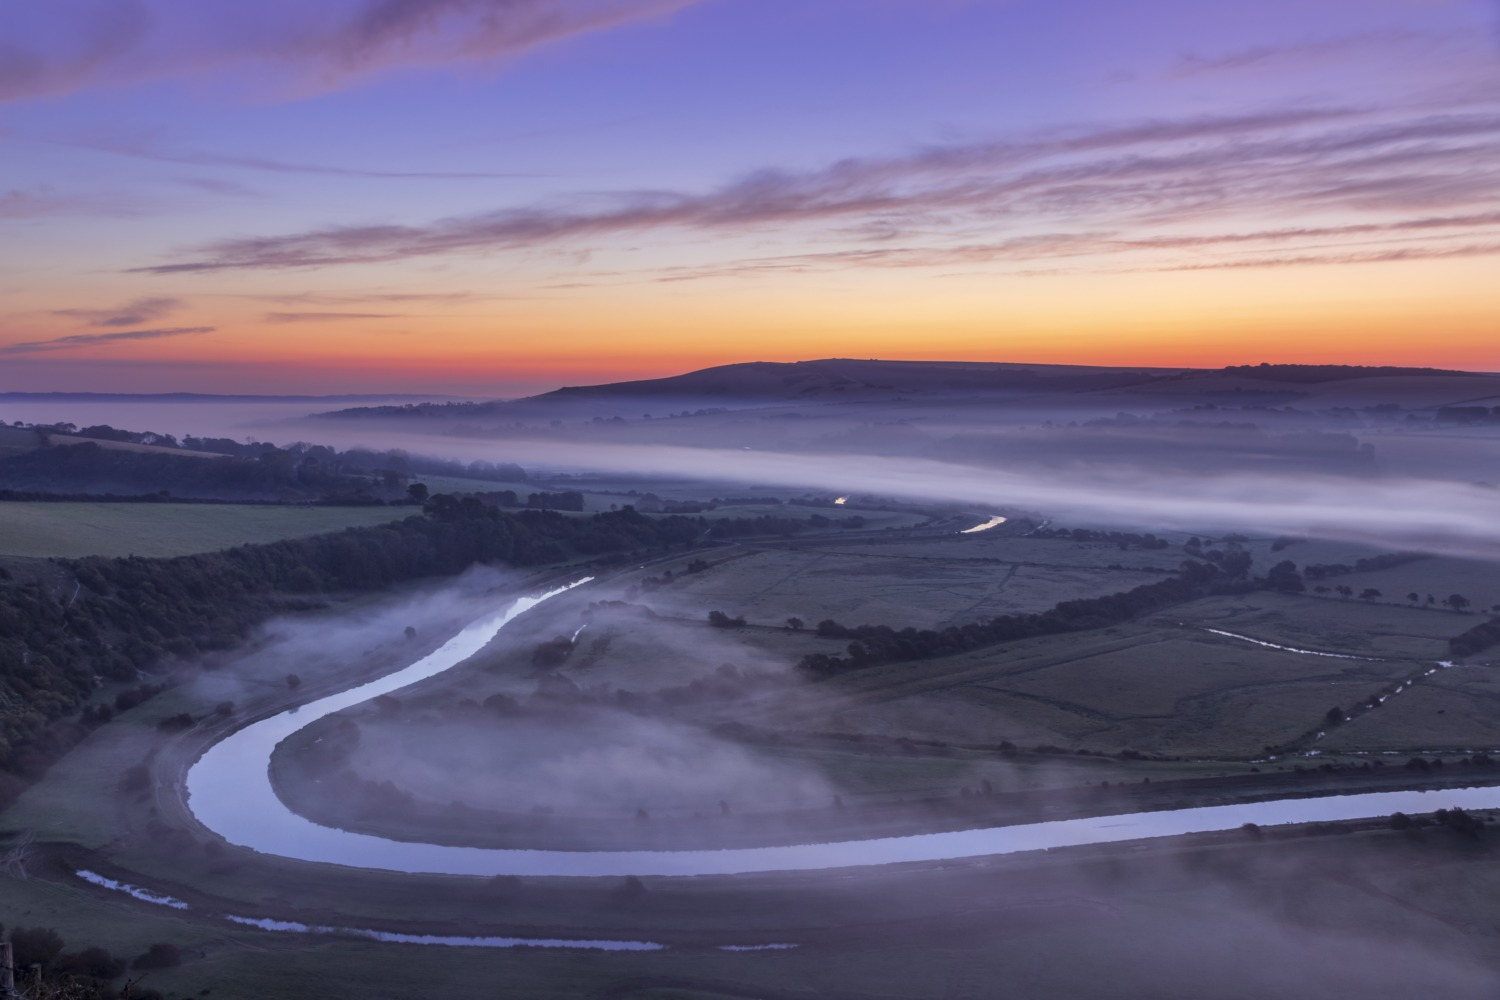 A new day dawns over the Cuckmere valley from High and over south downs east Sussex south east England